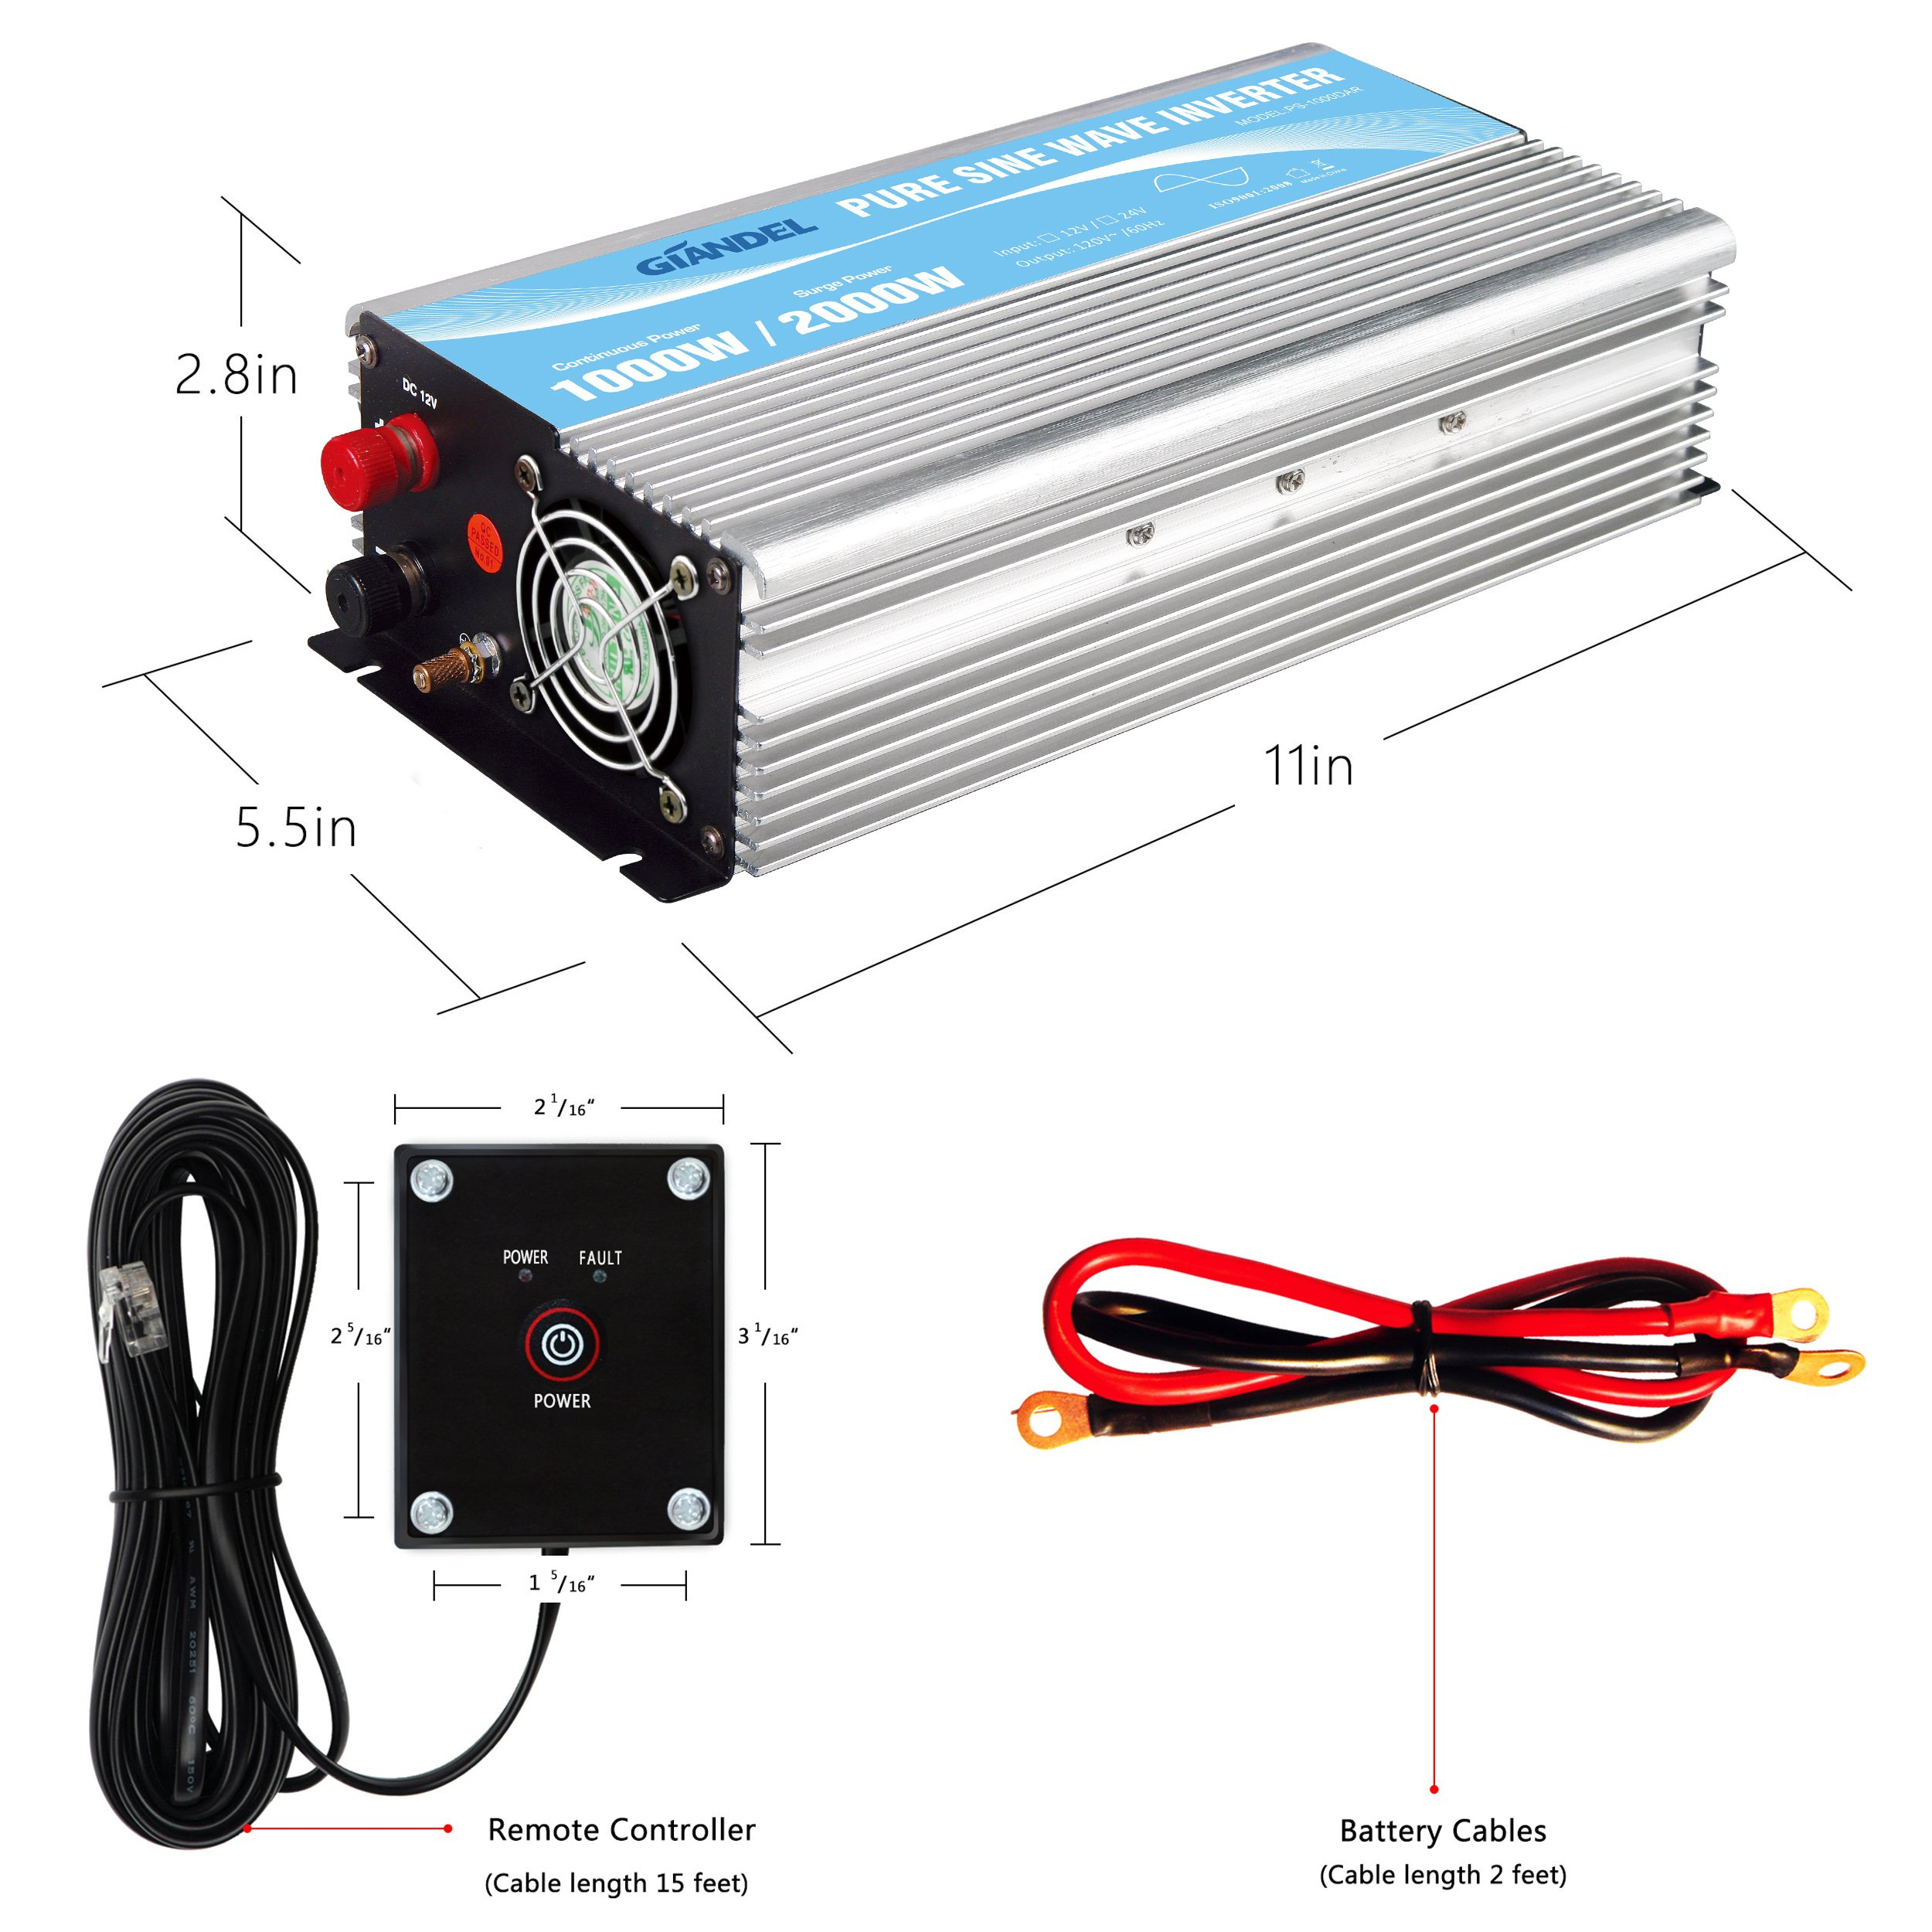 Giandel Pure Sine Wave Power Inverter 1000W DC 24V to AC 110V 120V with Remote Control with Dual AC Outlets &1A USB Port for RV Truck Car Solar System and Emergency by Giandel (Image #4)